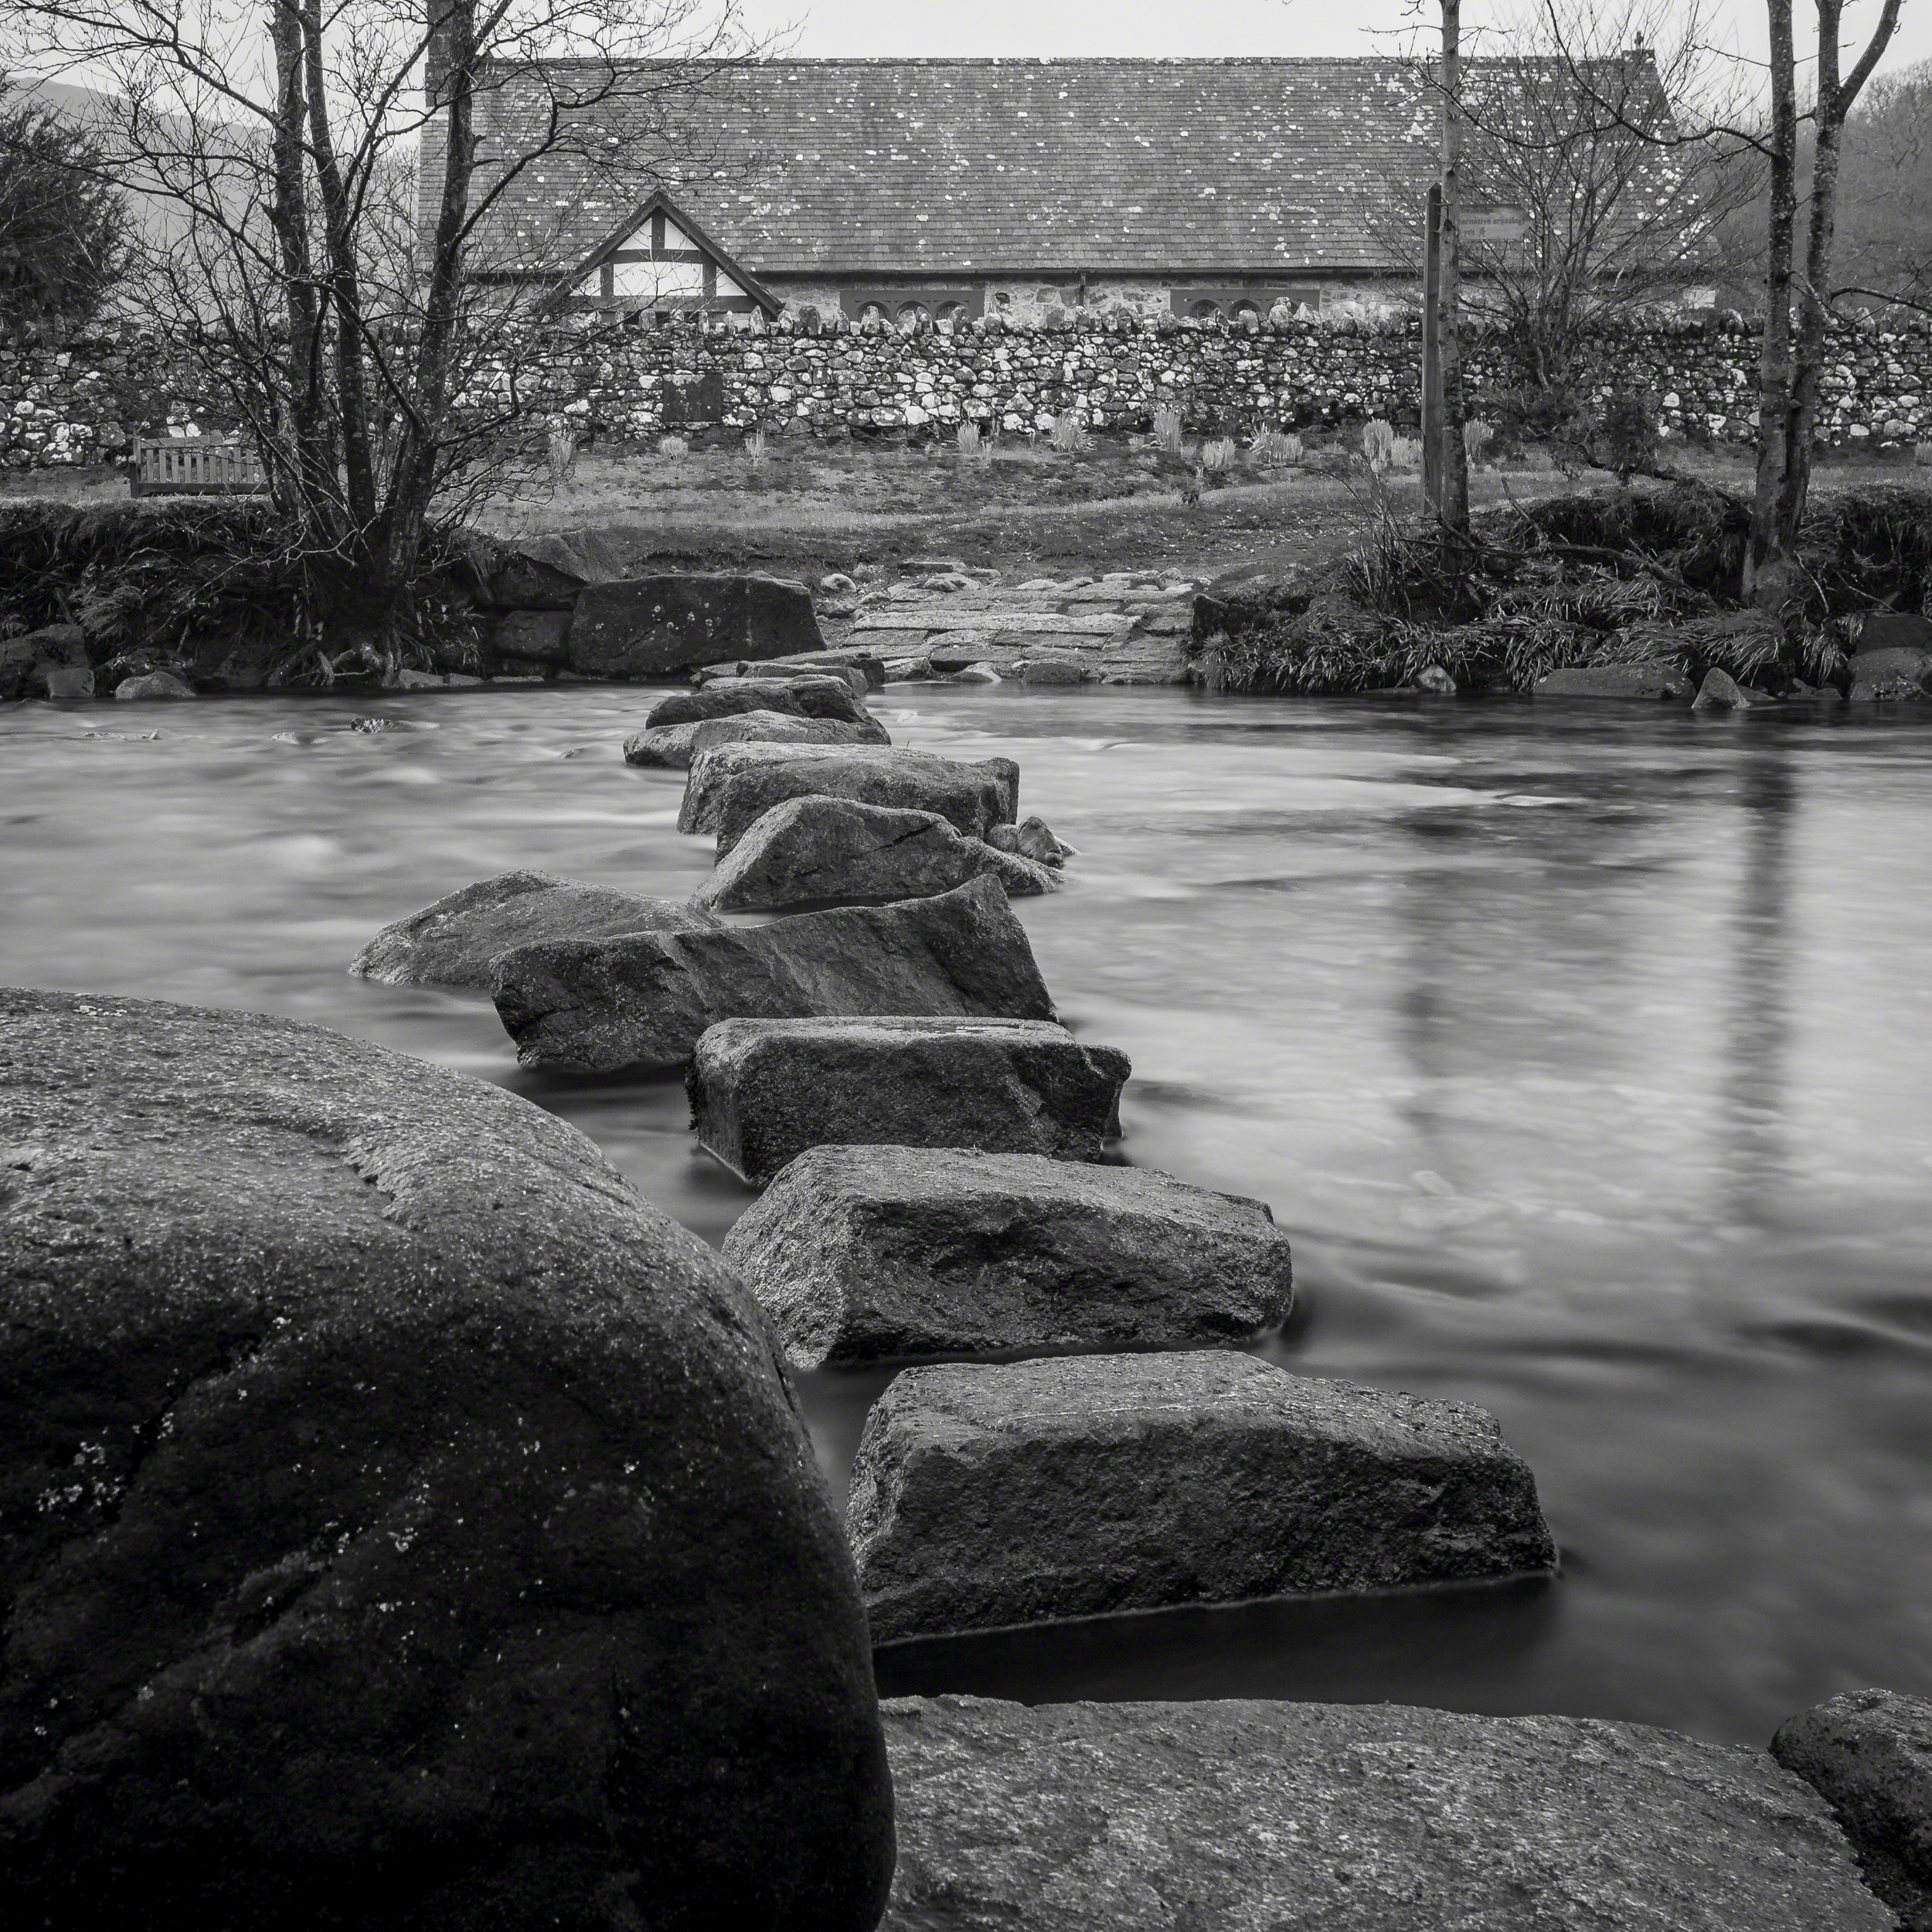 Lake District March 2016-8144-Edit.jpg